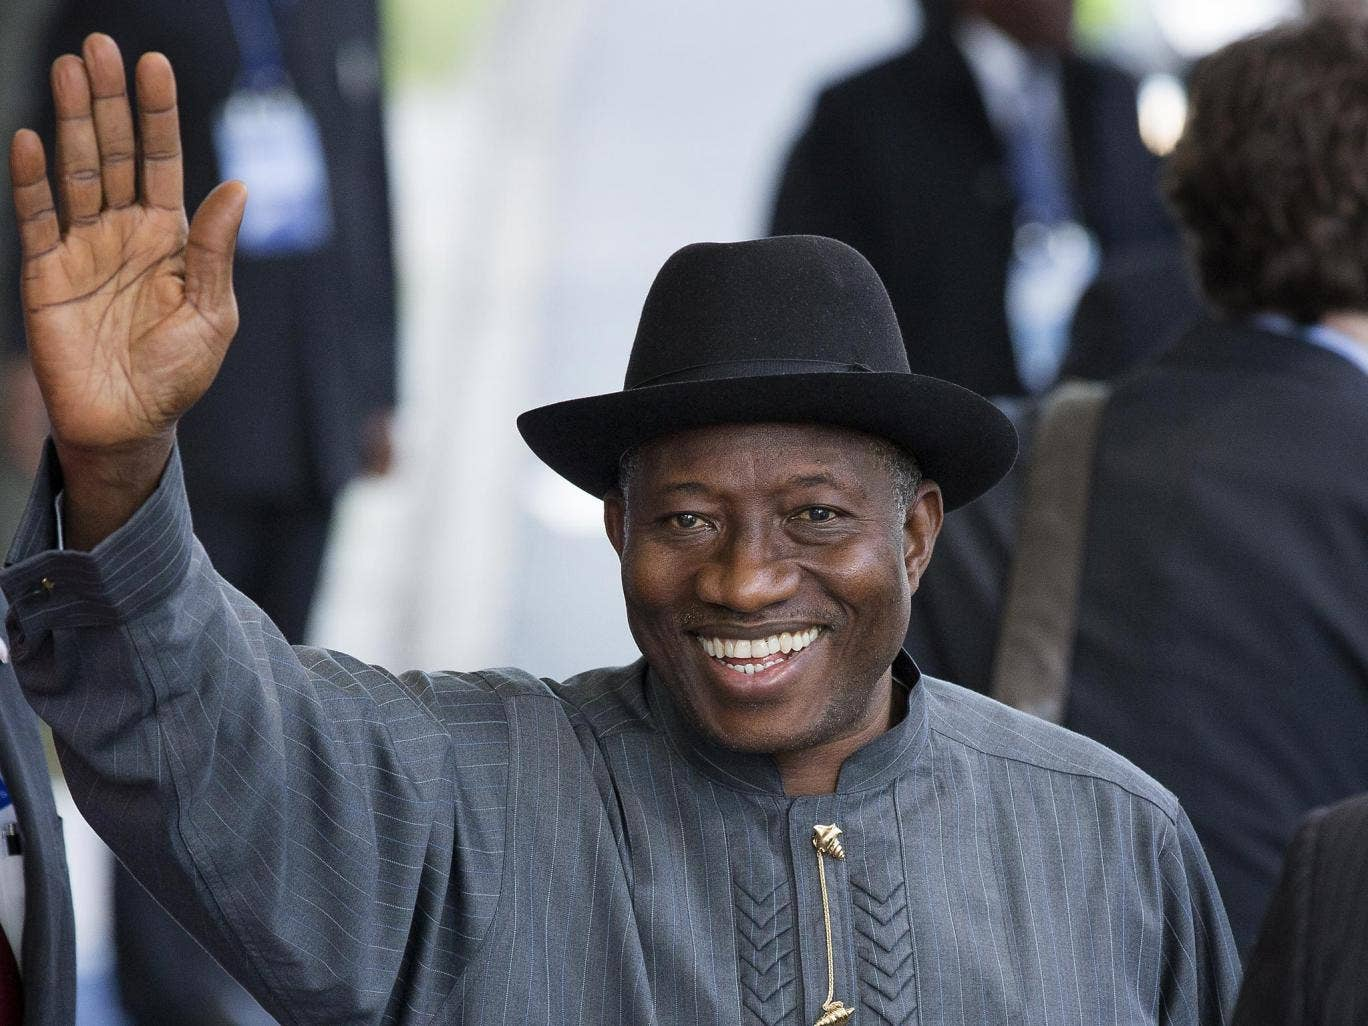 President of Nigeria Goodluck Jonathan cancelled a second visit